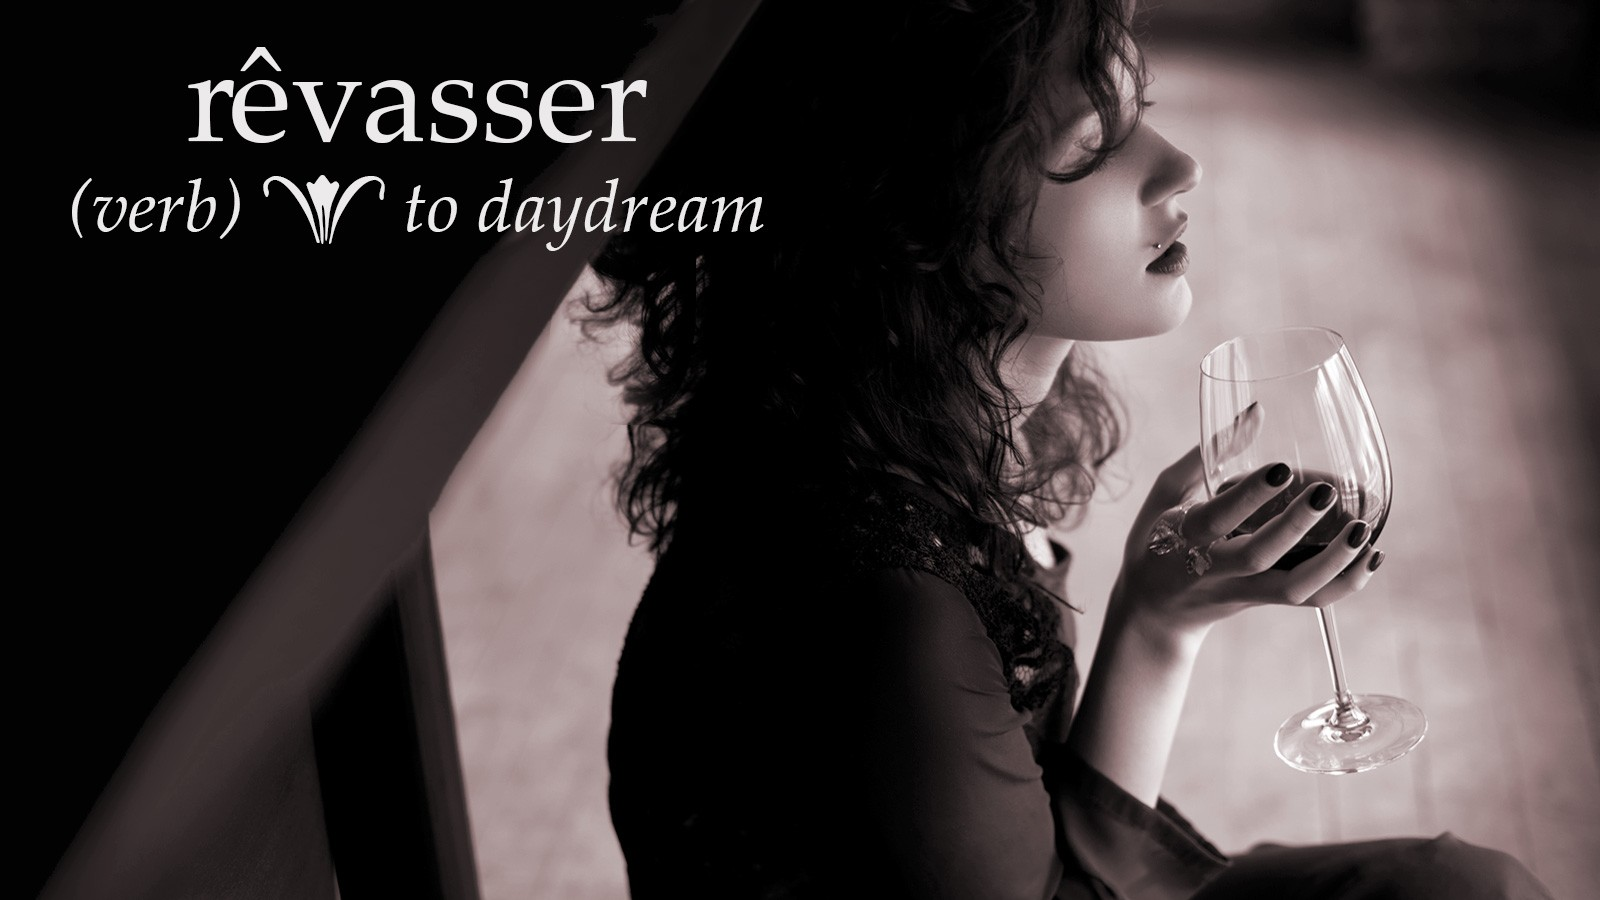 rêvasser means to daydream in french